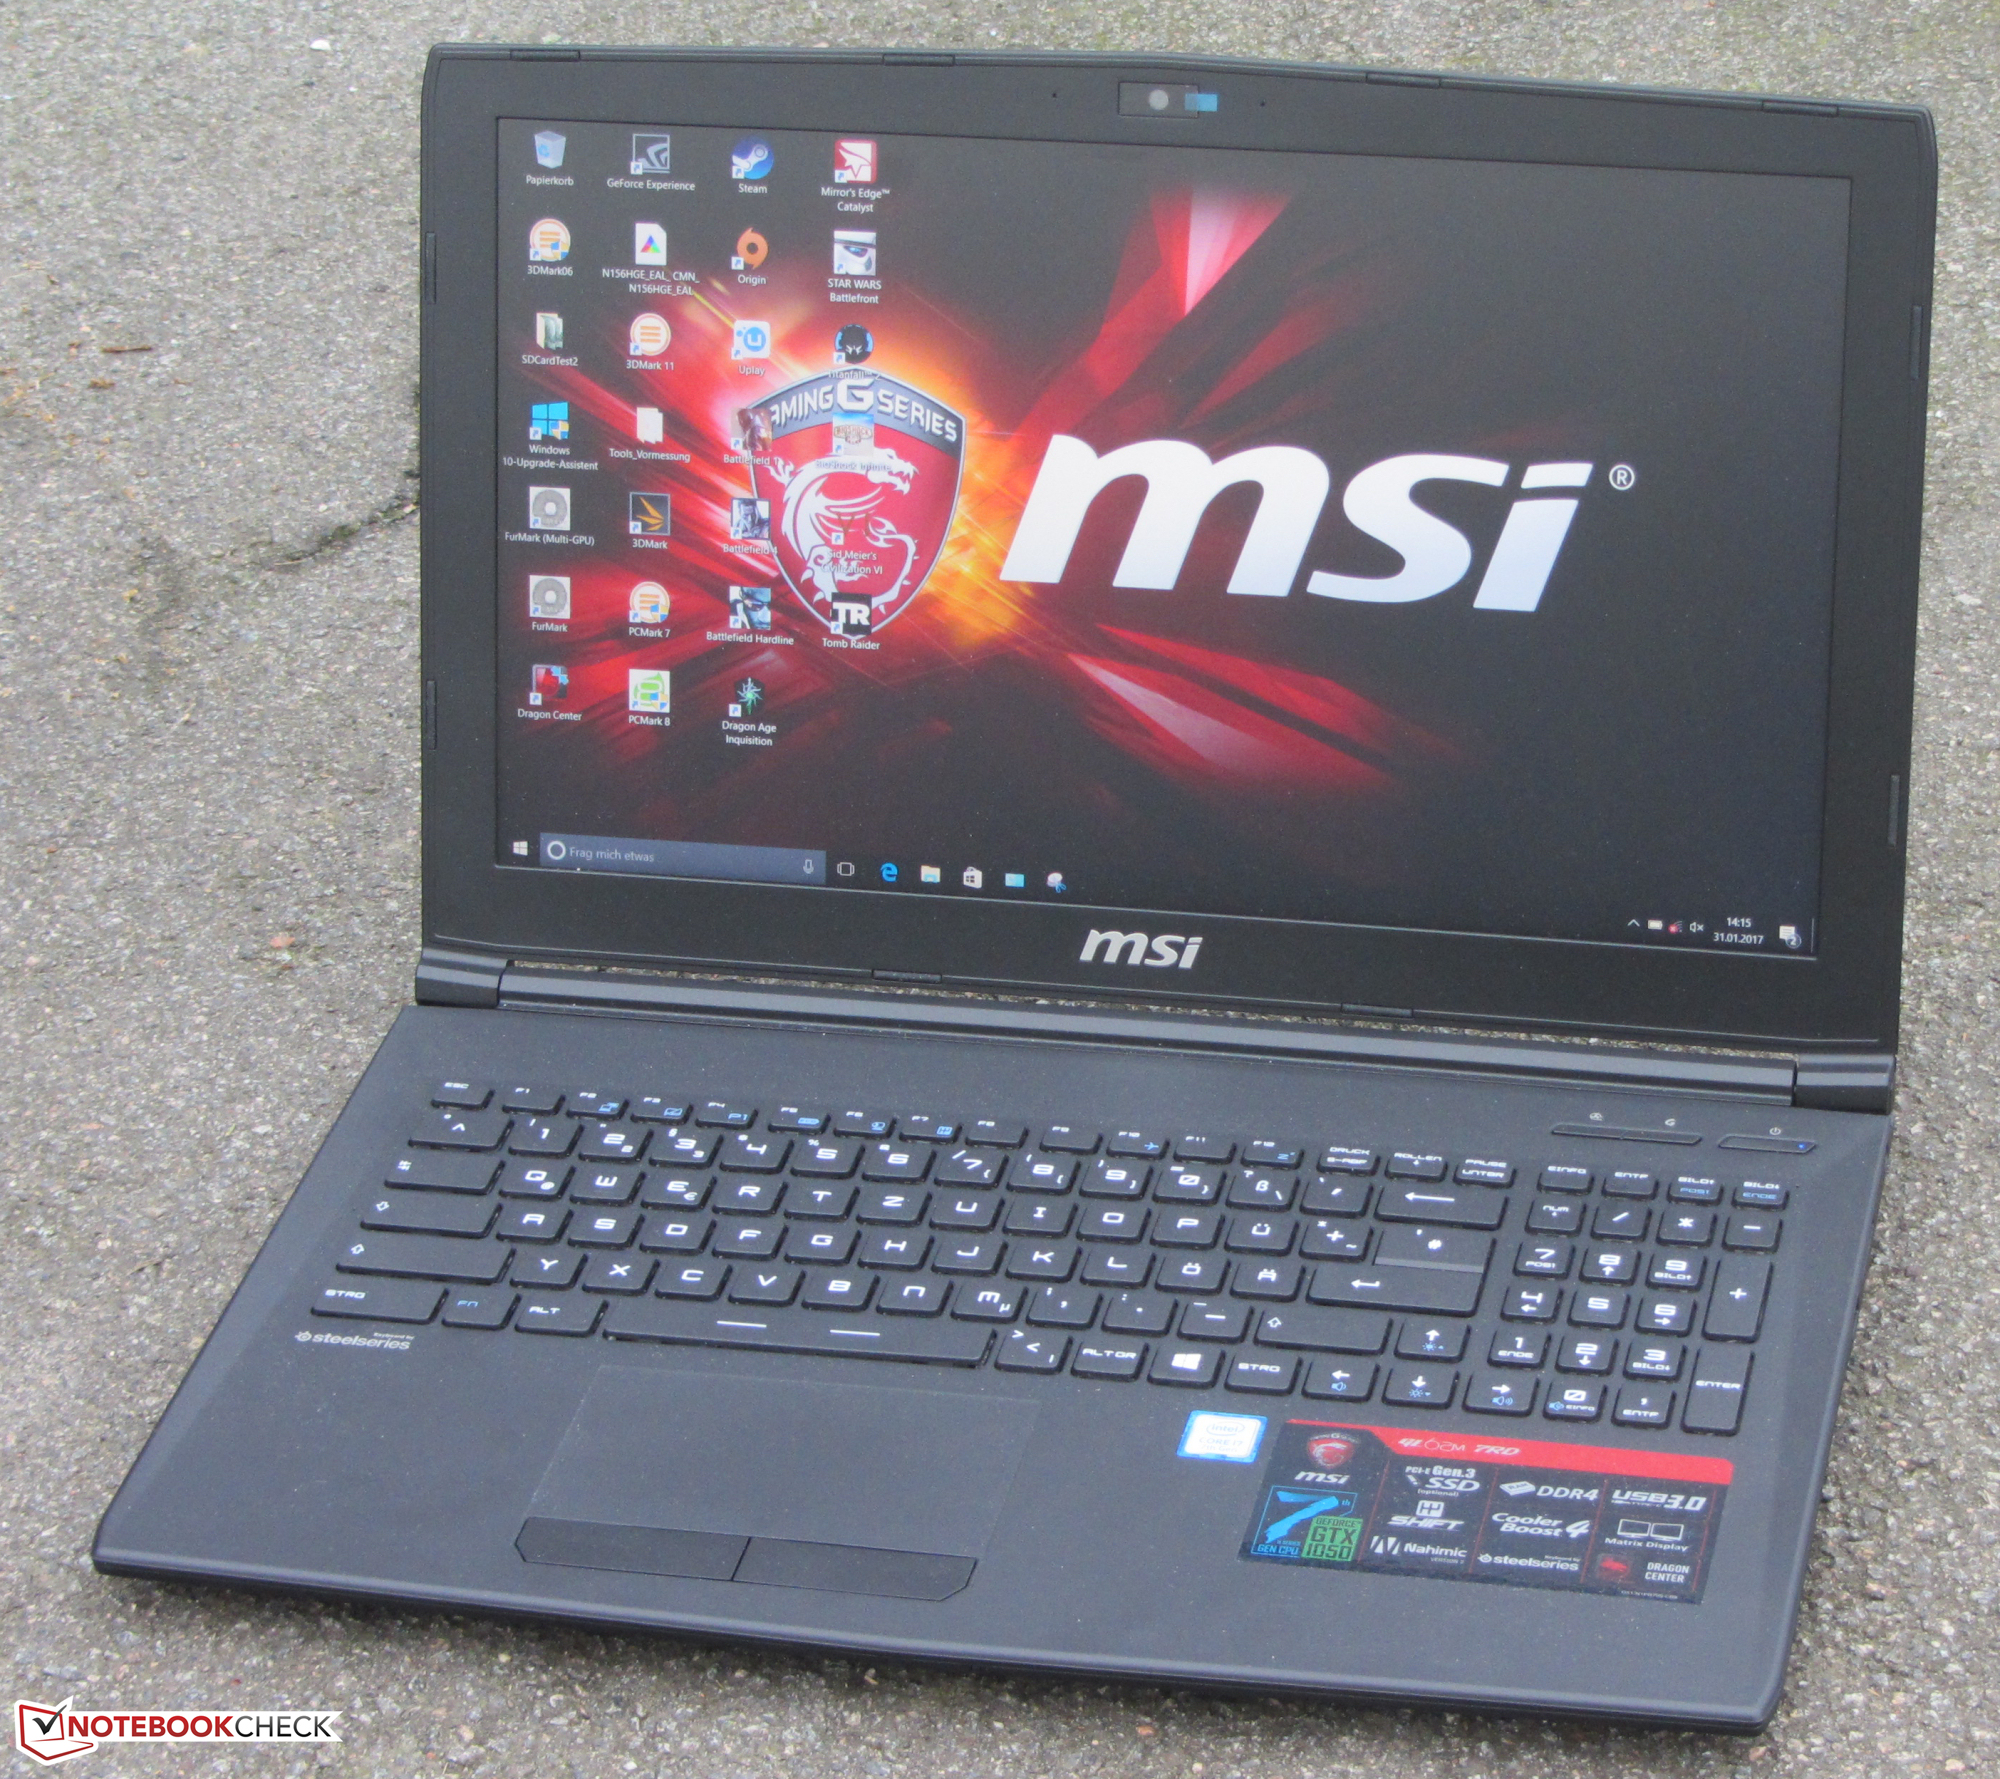 MSI GT60 0ND Notebook S-Bar 2.0 XP